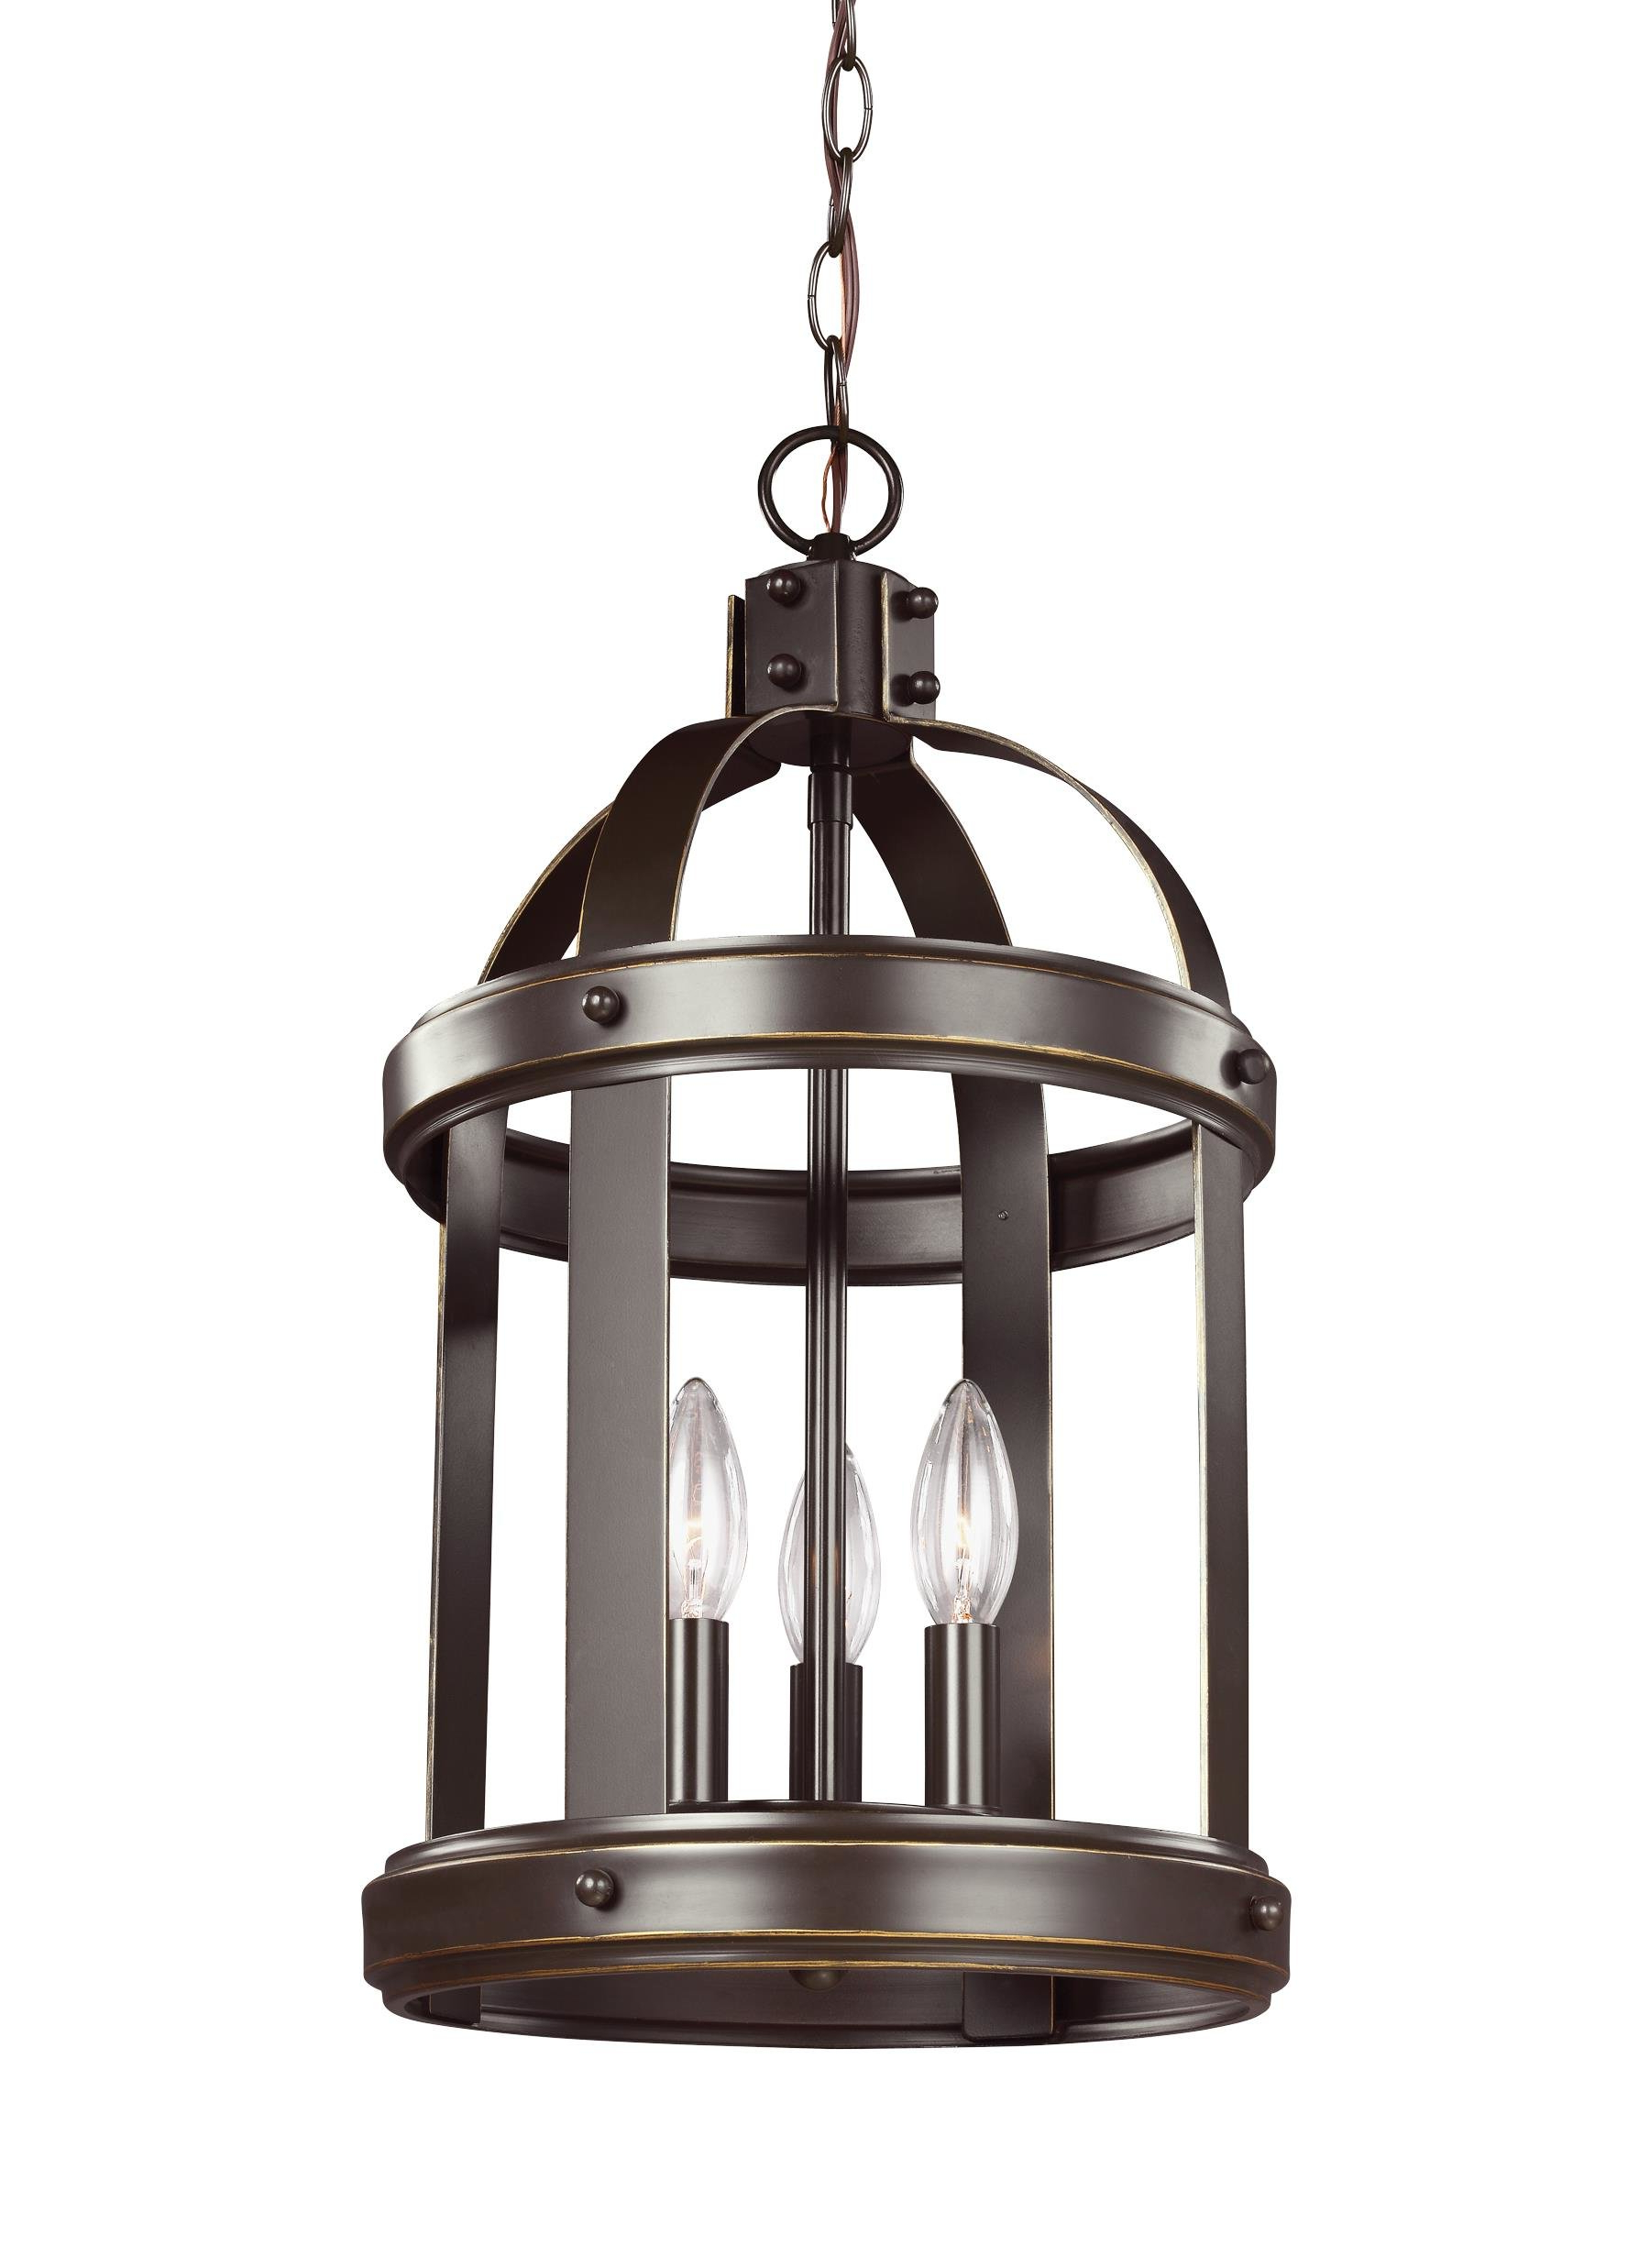 Widely Used Friedland 3 Light Drum Tiered Pendants For Pawling 3 Light Lantern Cylinder Pendant (View 20 of 20)